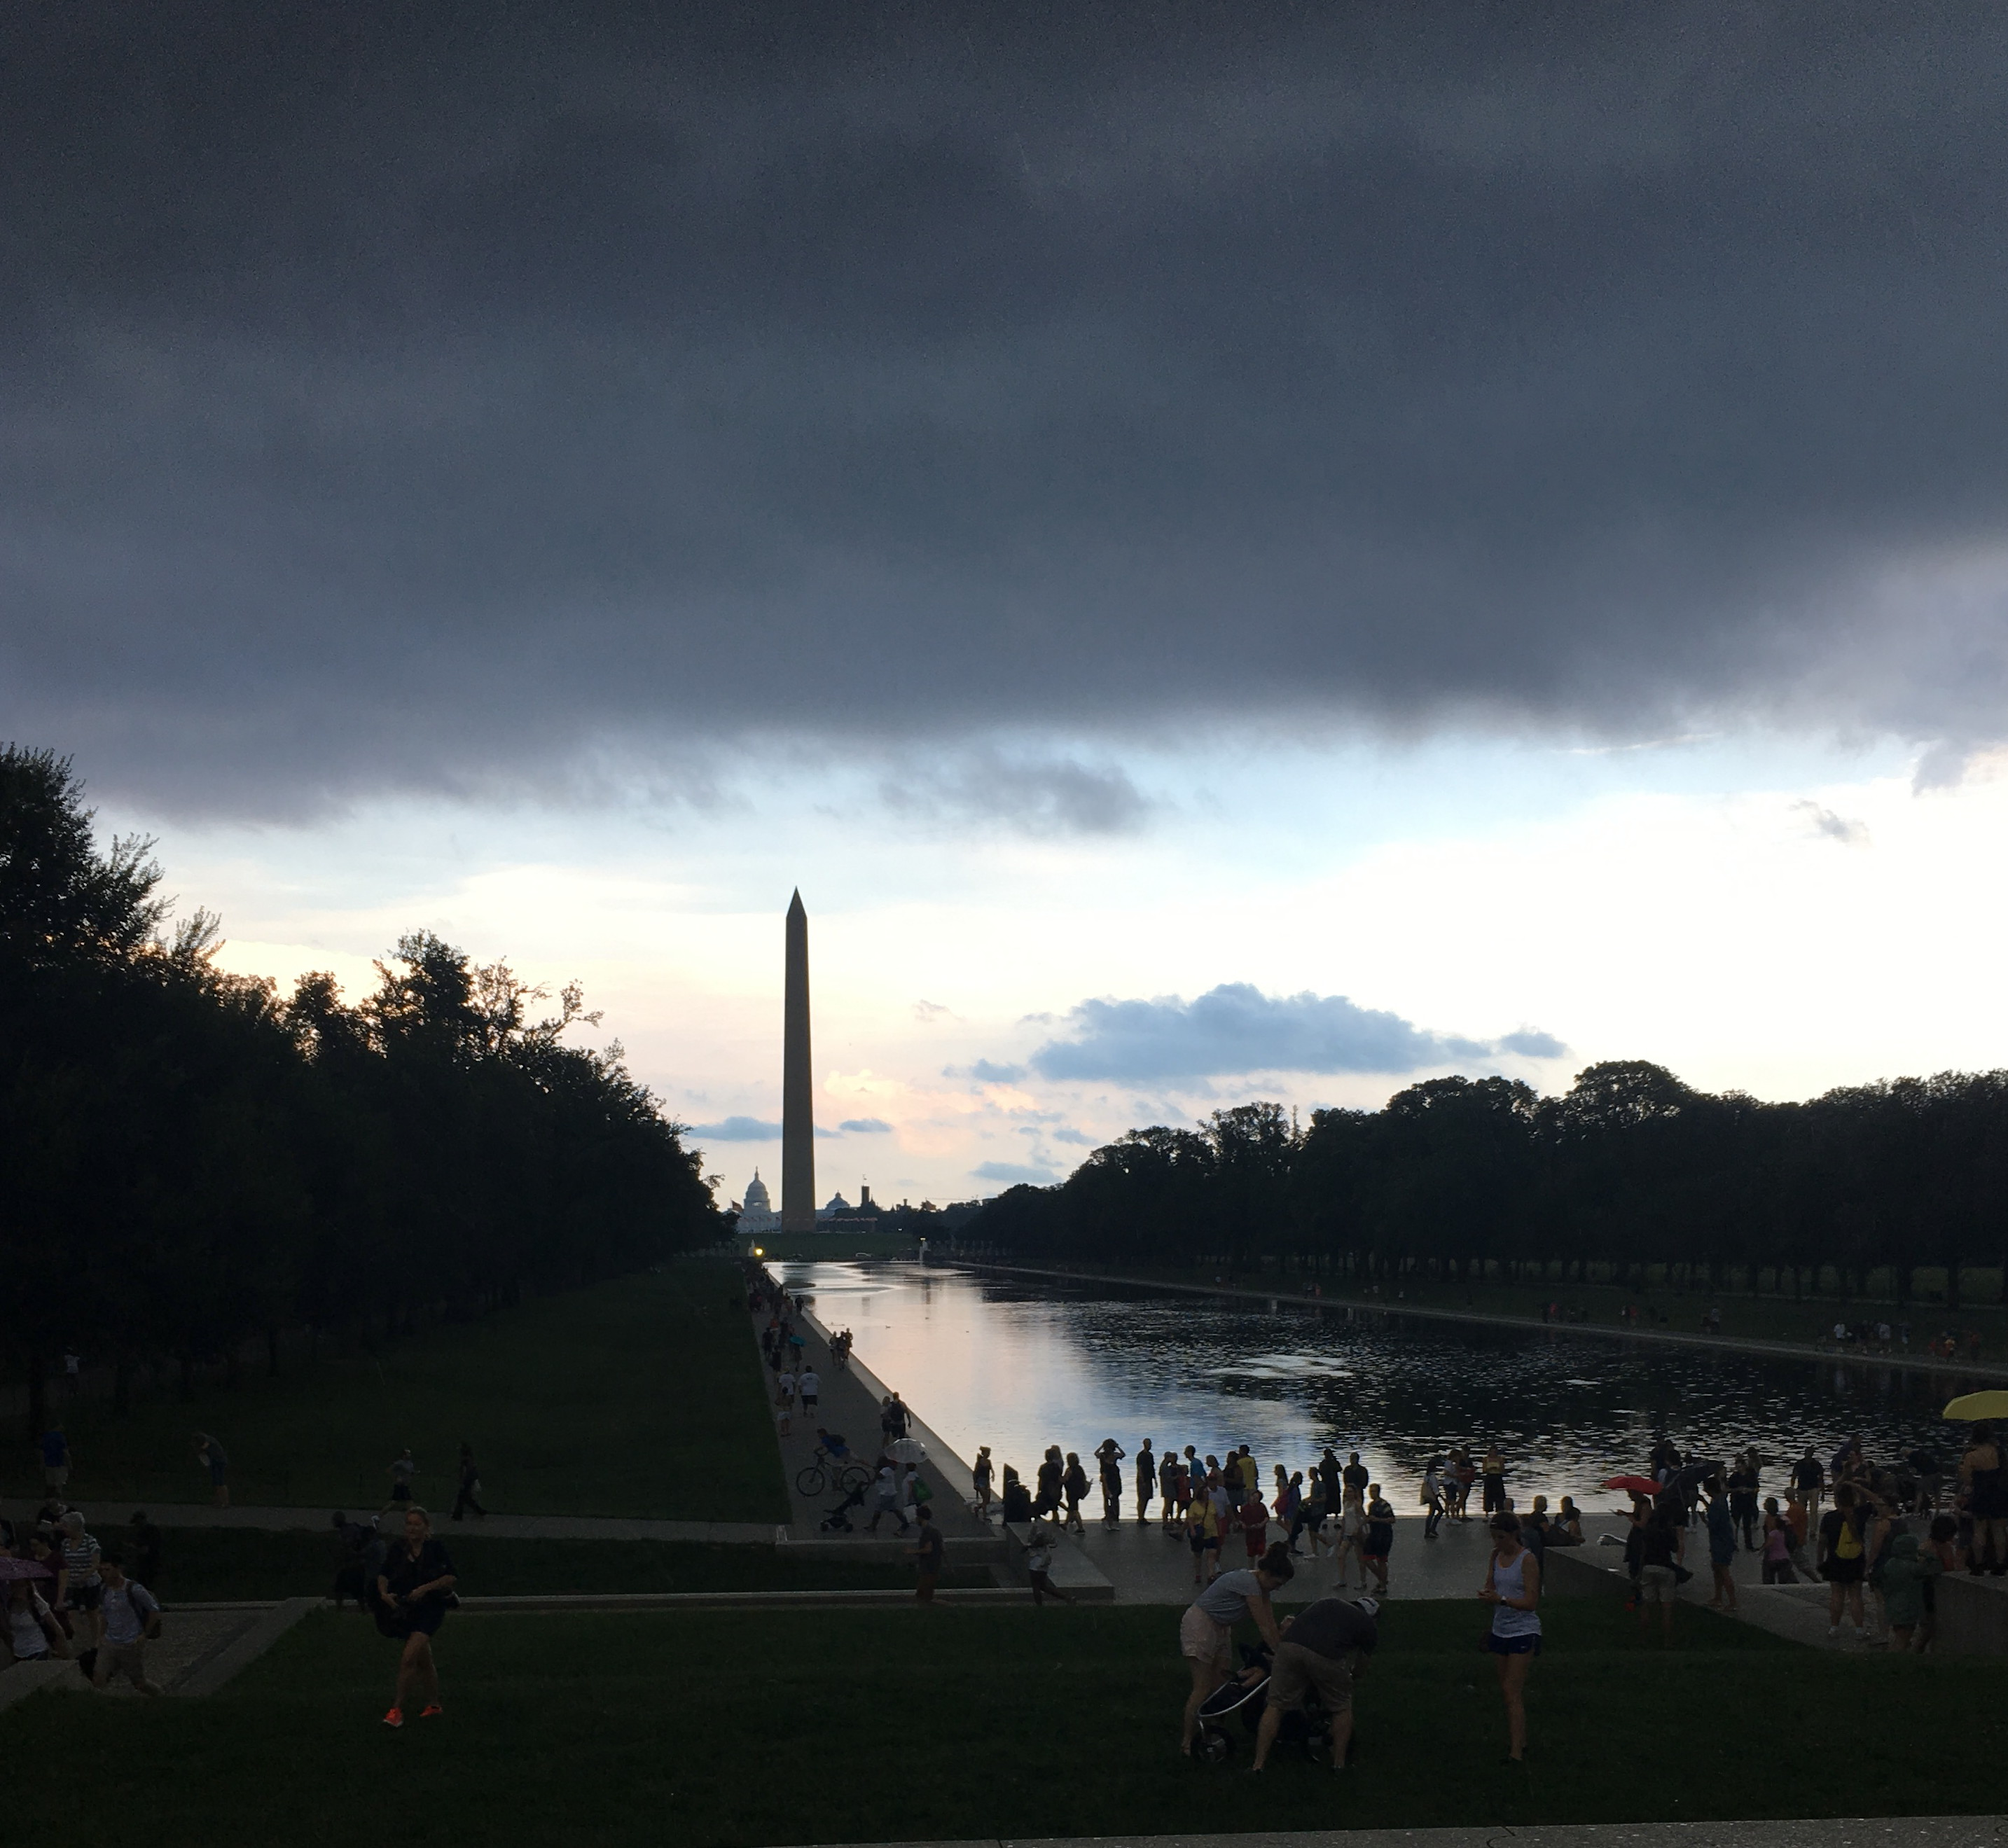 Storm in DC